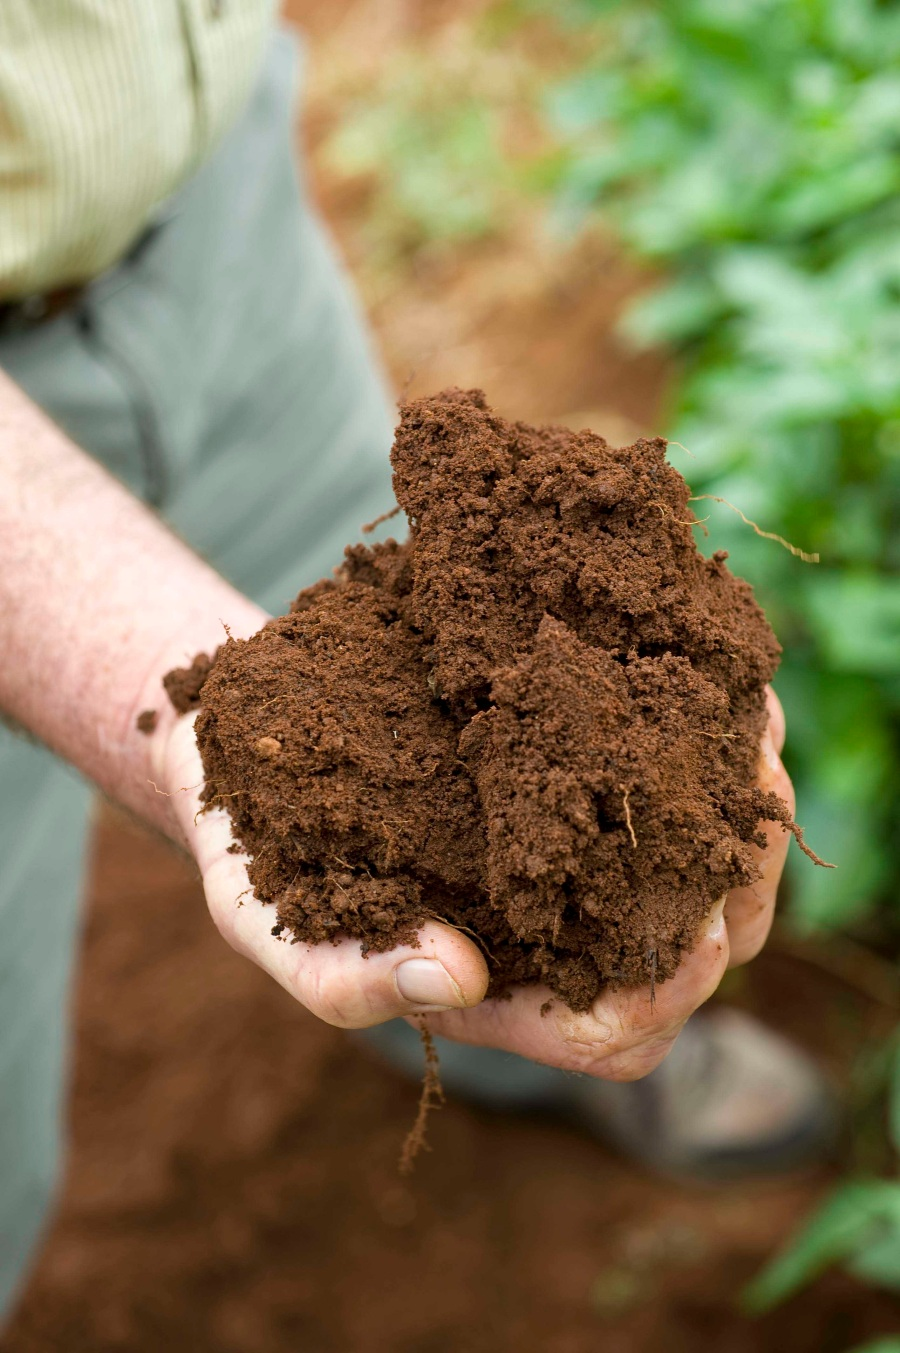 woolworths customers - hands with soil